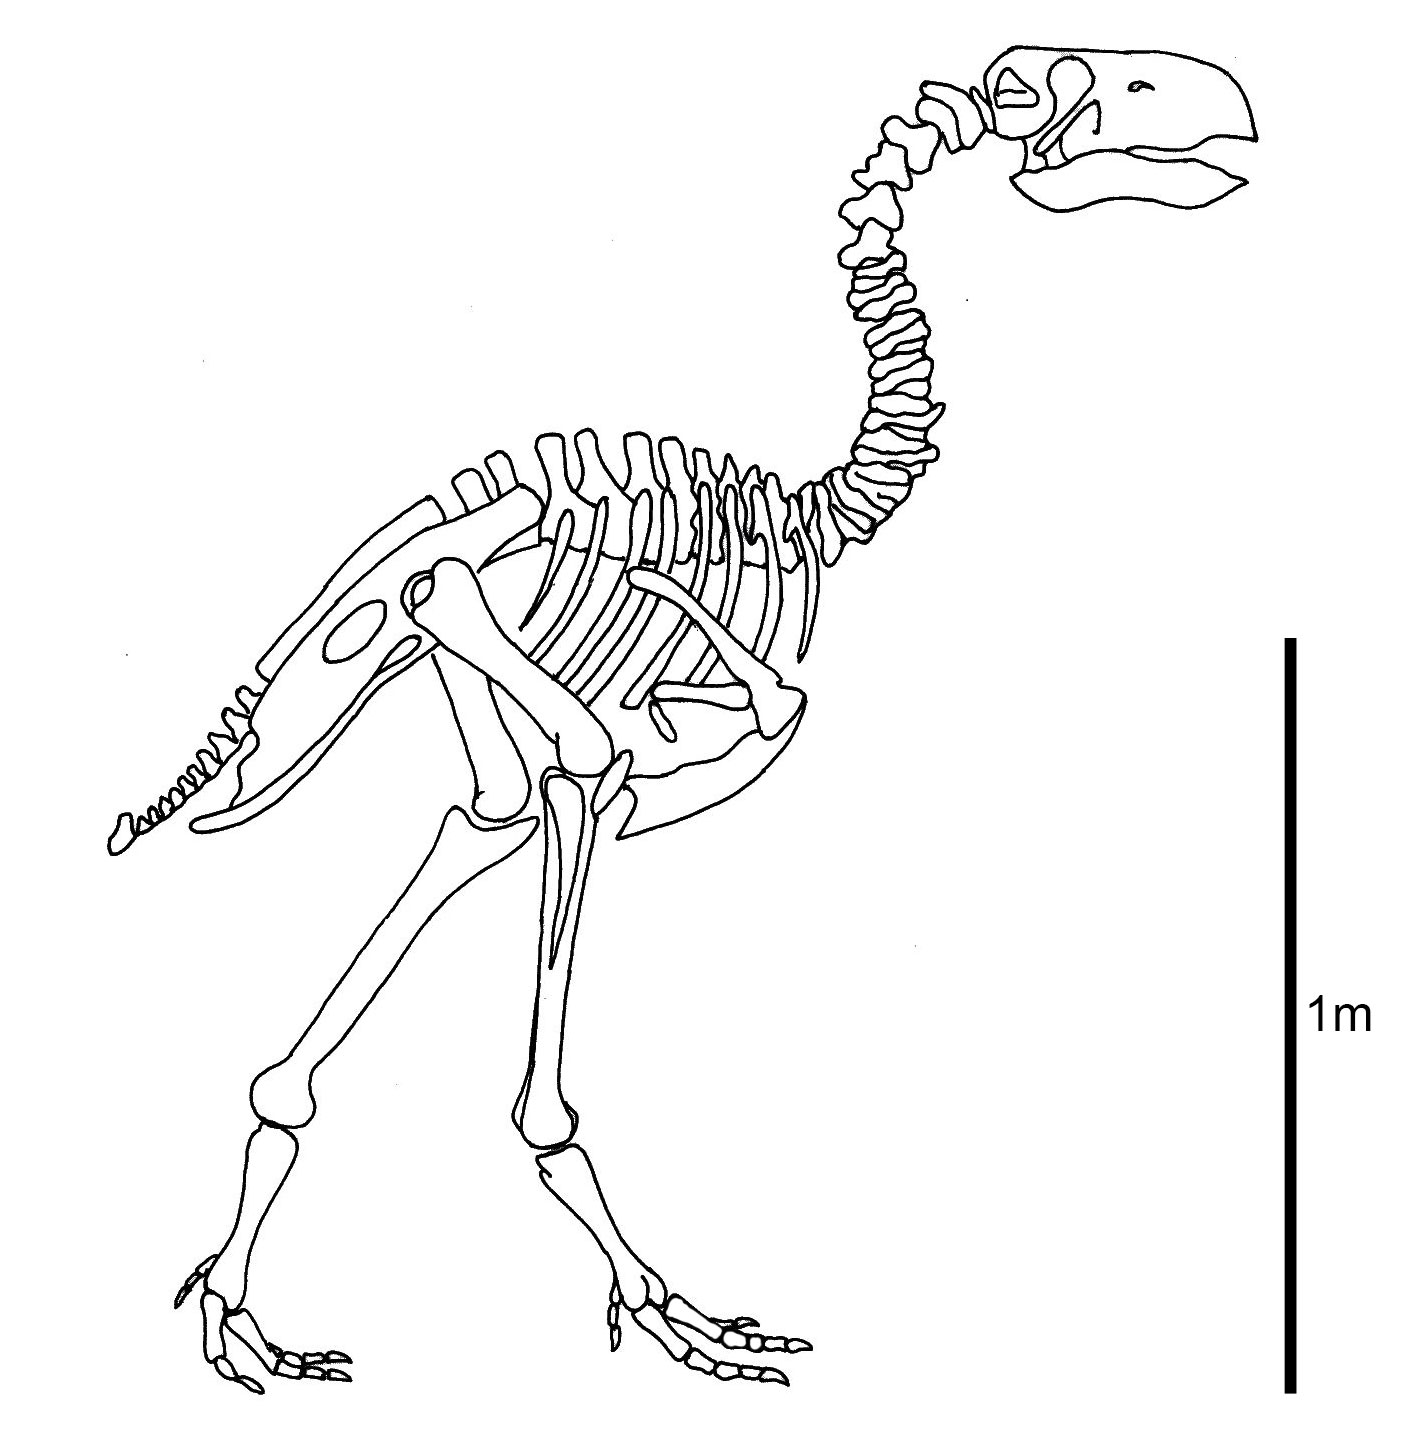 suggests terror bird u0027s beak was worse than its bite